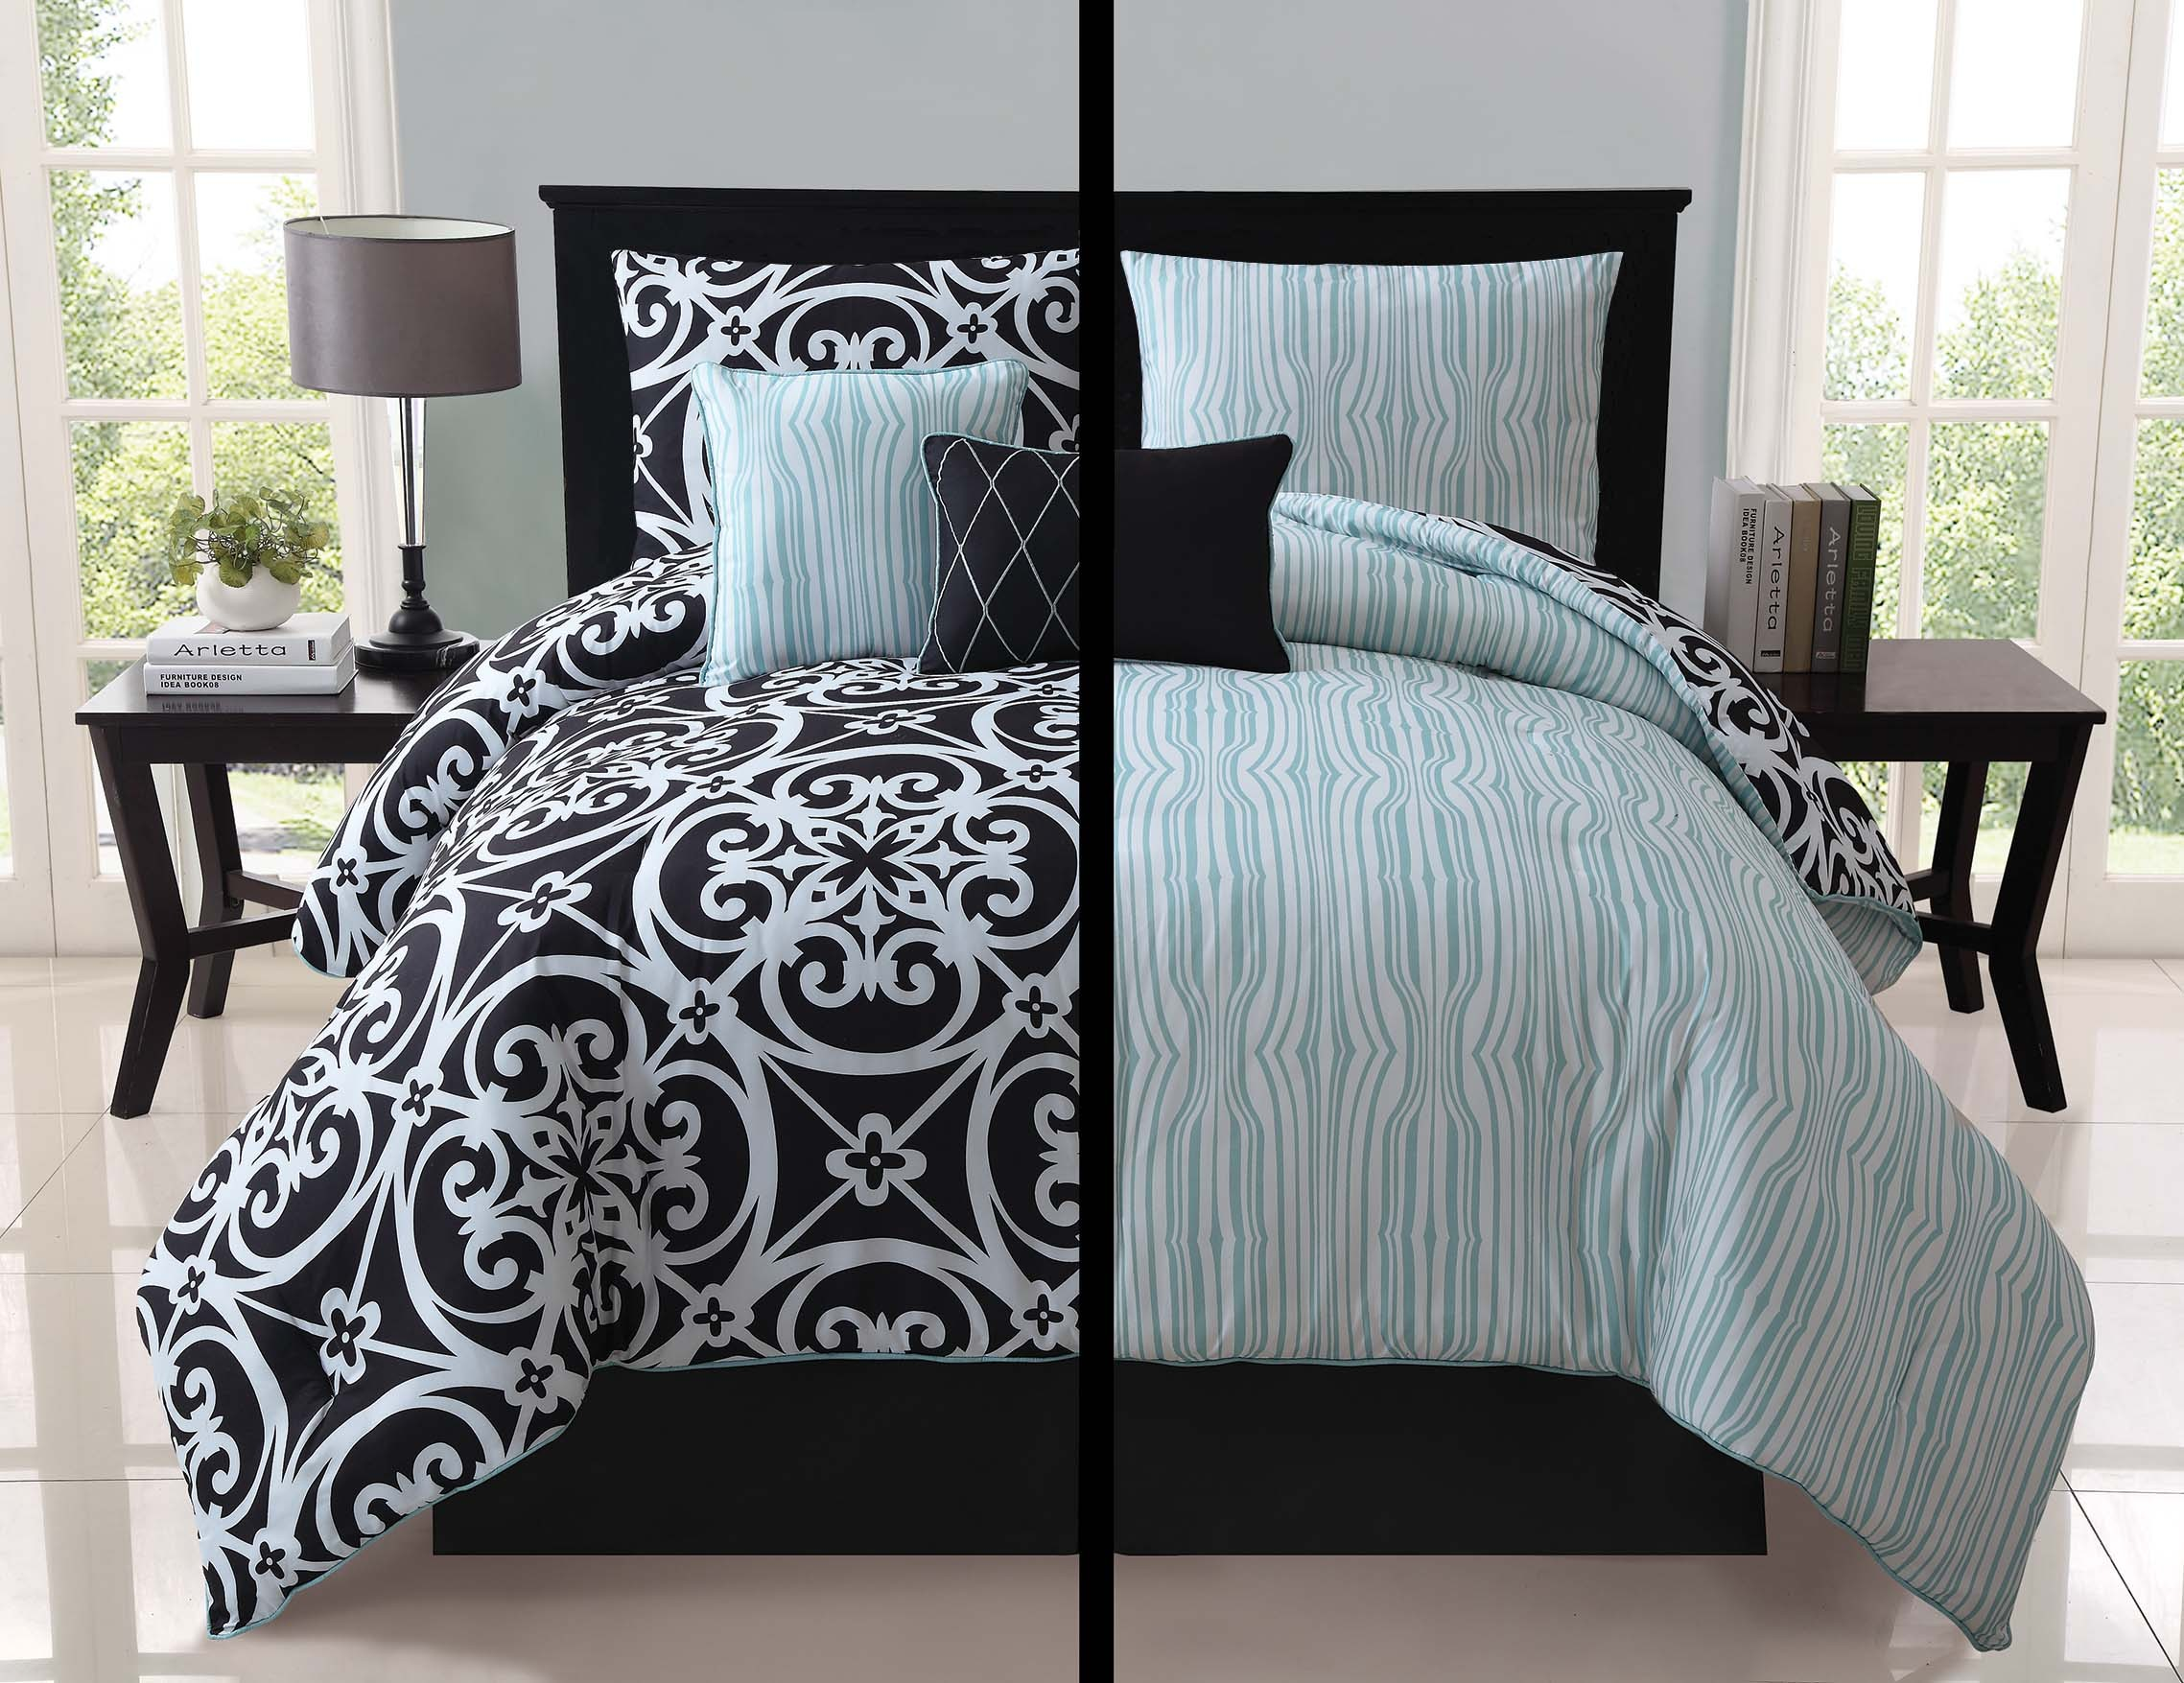 Luxury Bed Comforter Sets | Luxury Comforter Sets | 24 Piece Comforter Set